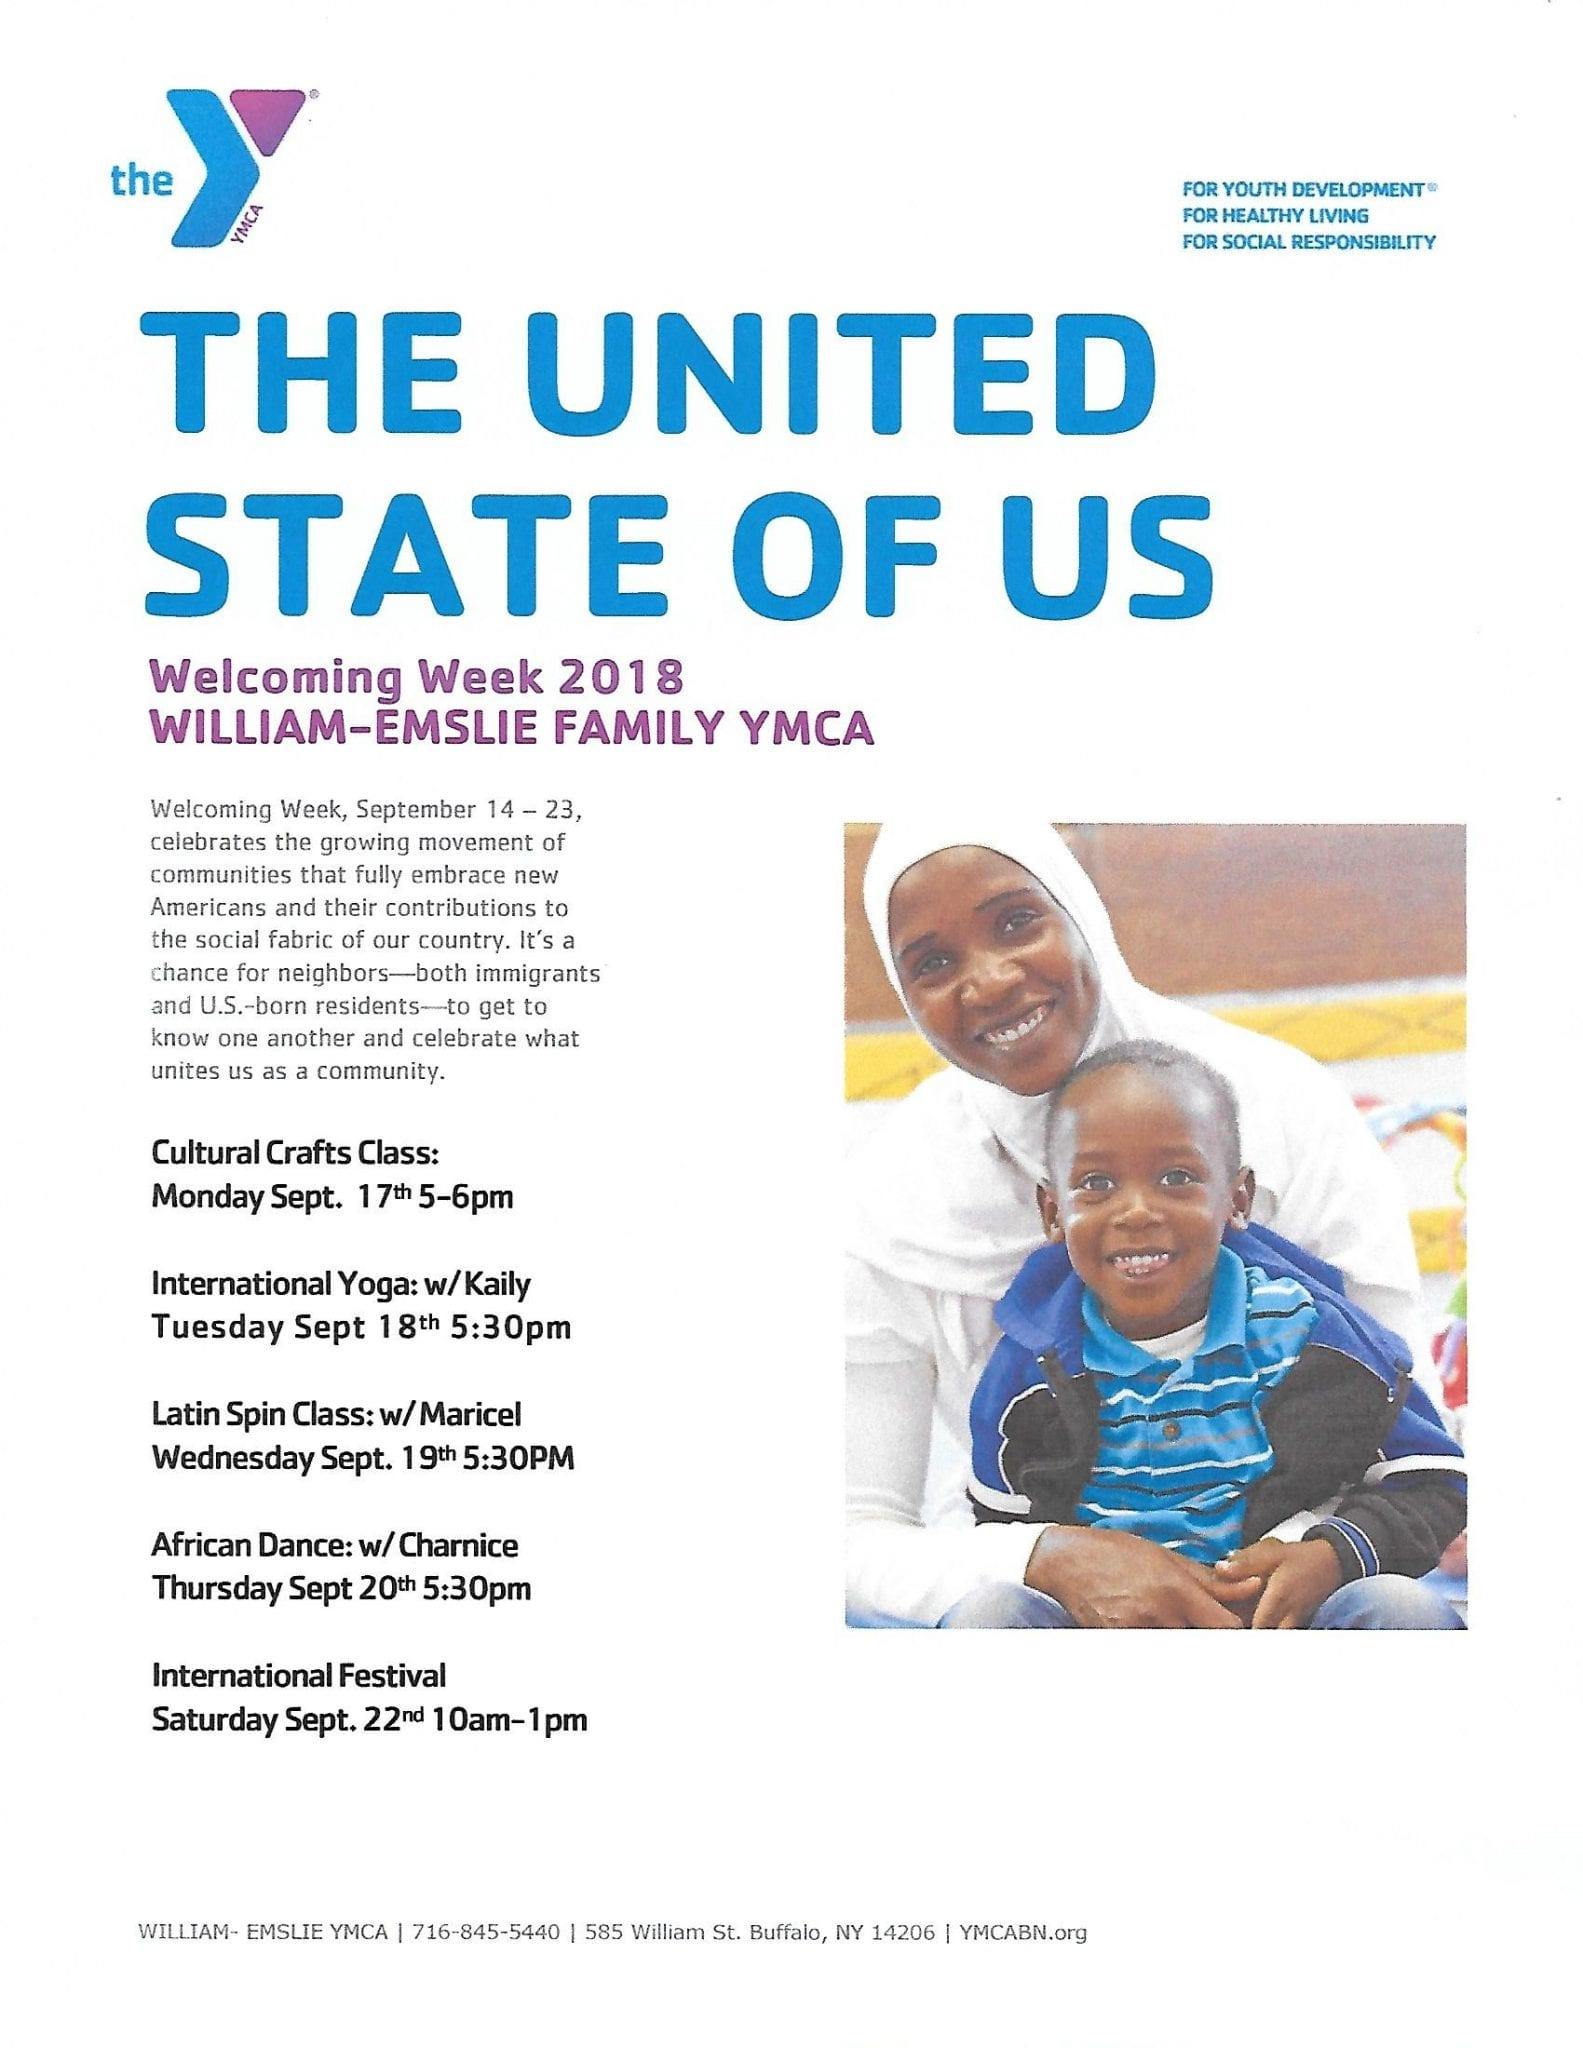 YMCA The United States of US |